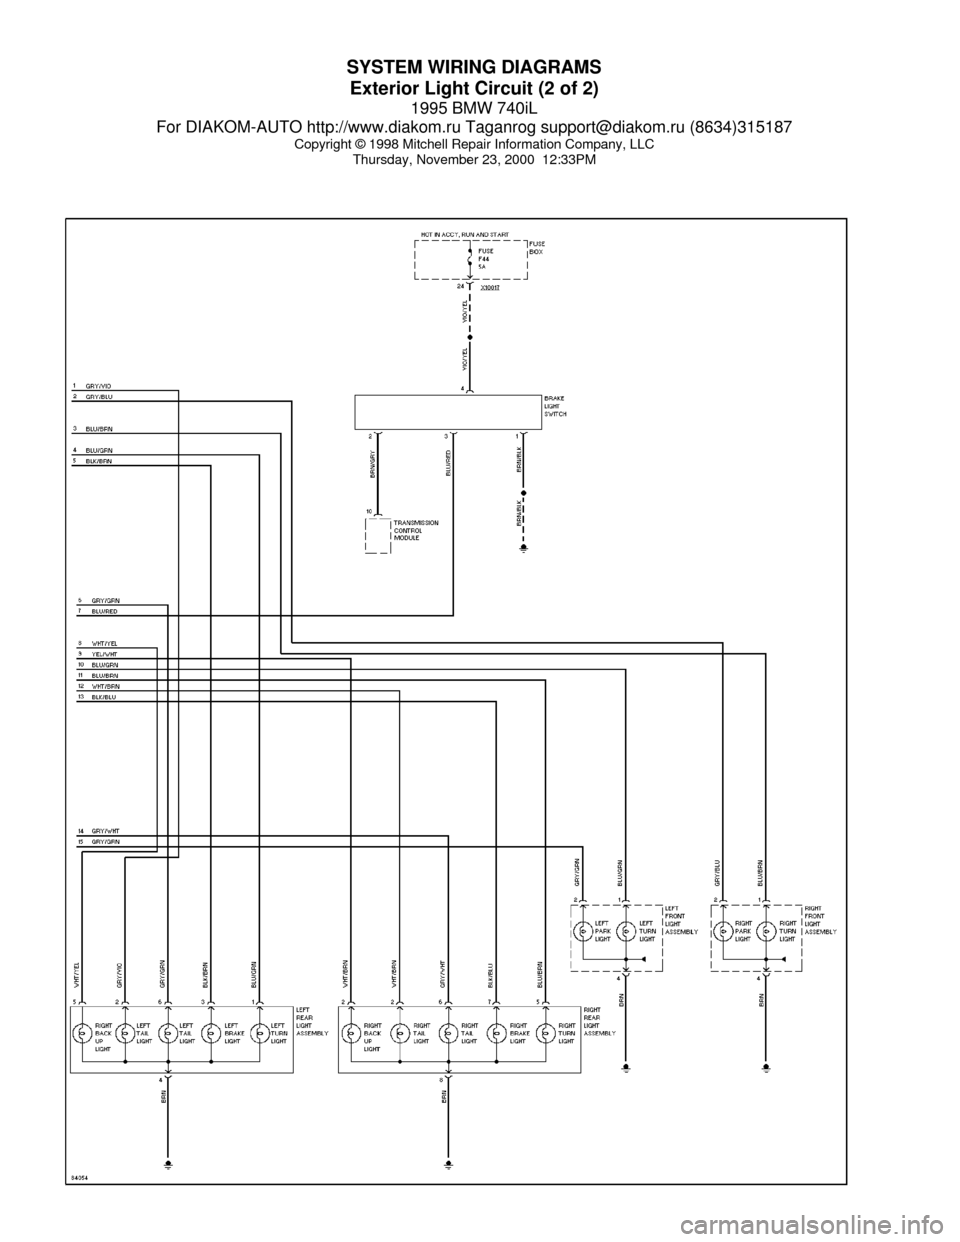 hight resolution of 1993 bmw 740il wiring diagram simple wiring schema dodge fuse diagram fuse diagram bmw 740il